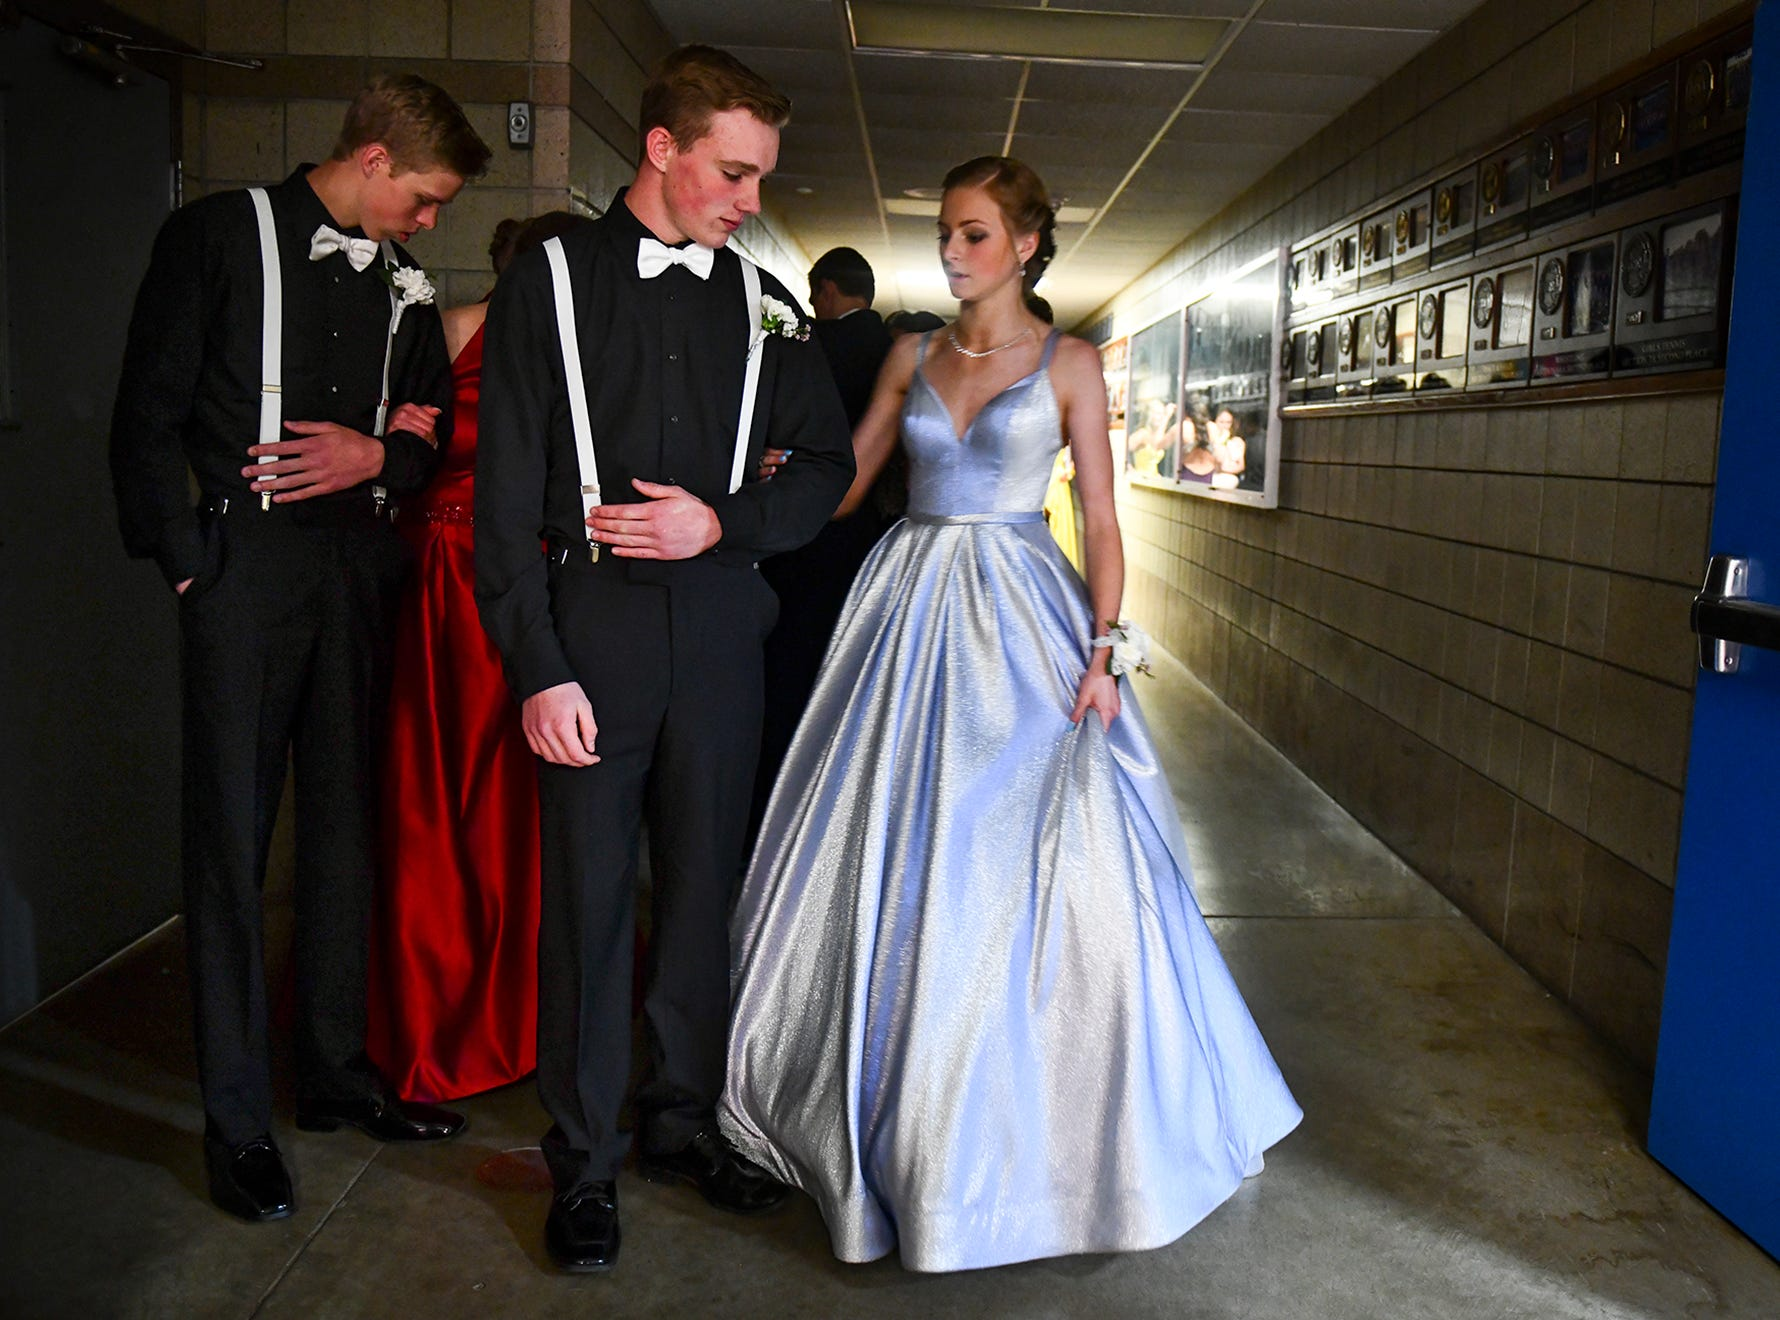 """Samantha Lewandowski and Wyatt Harris get ready to take their turn to lead off the prom grand march route Saturday, April 27, at Foley High School. The theme of this year's prom was """"Bright Lights, Big City."""""""